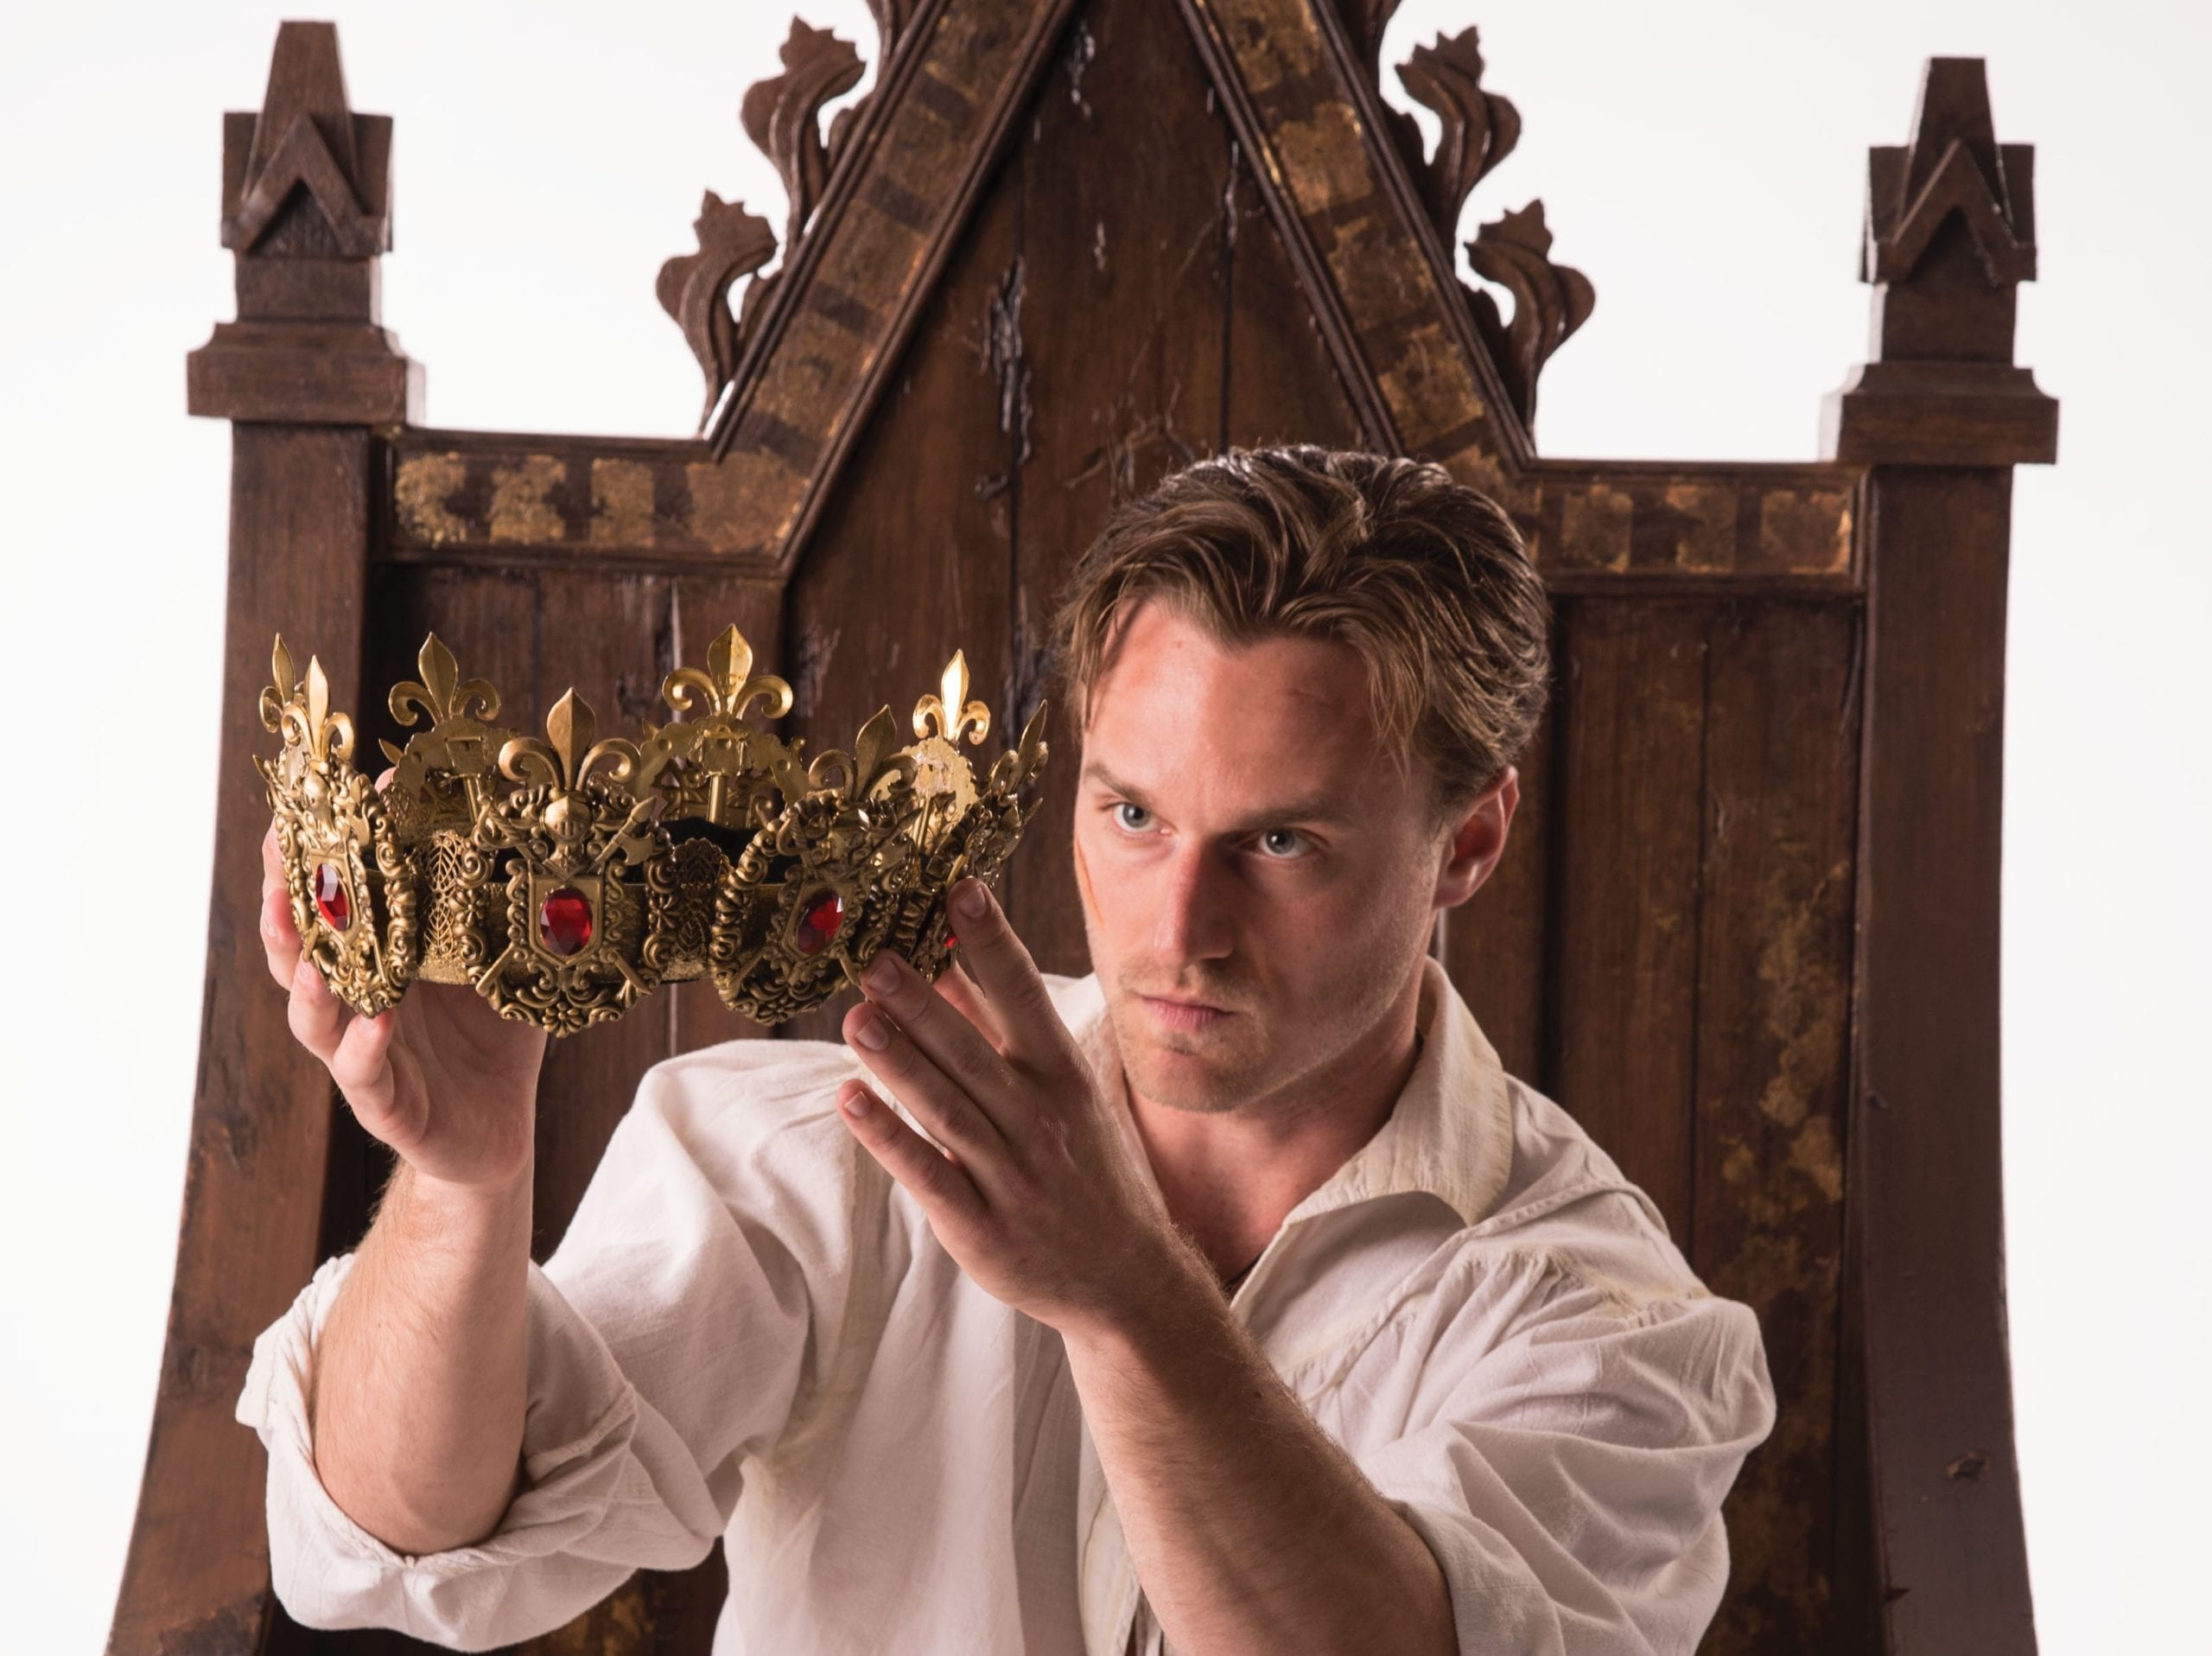 HENRY IV, PART TWO takes the crown